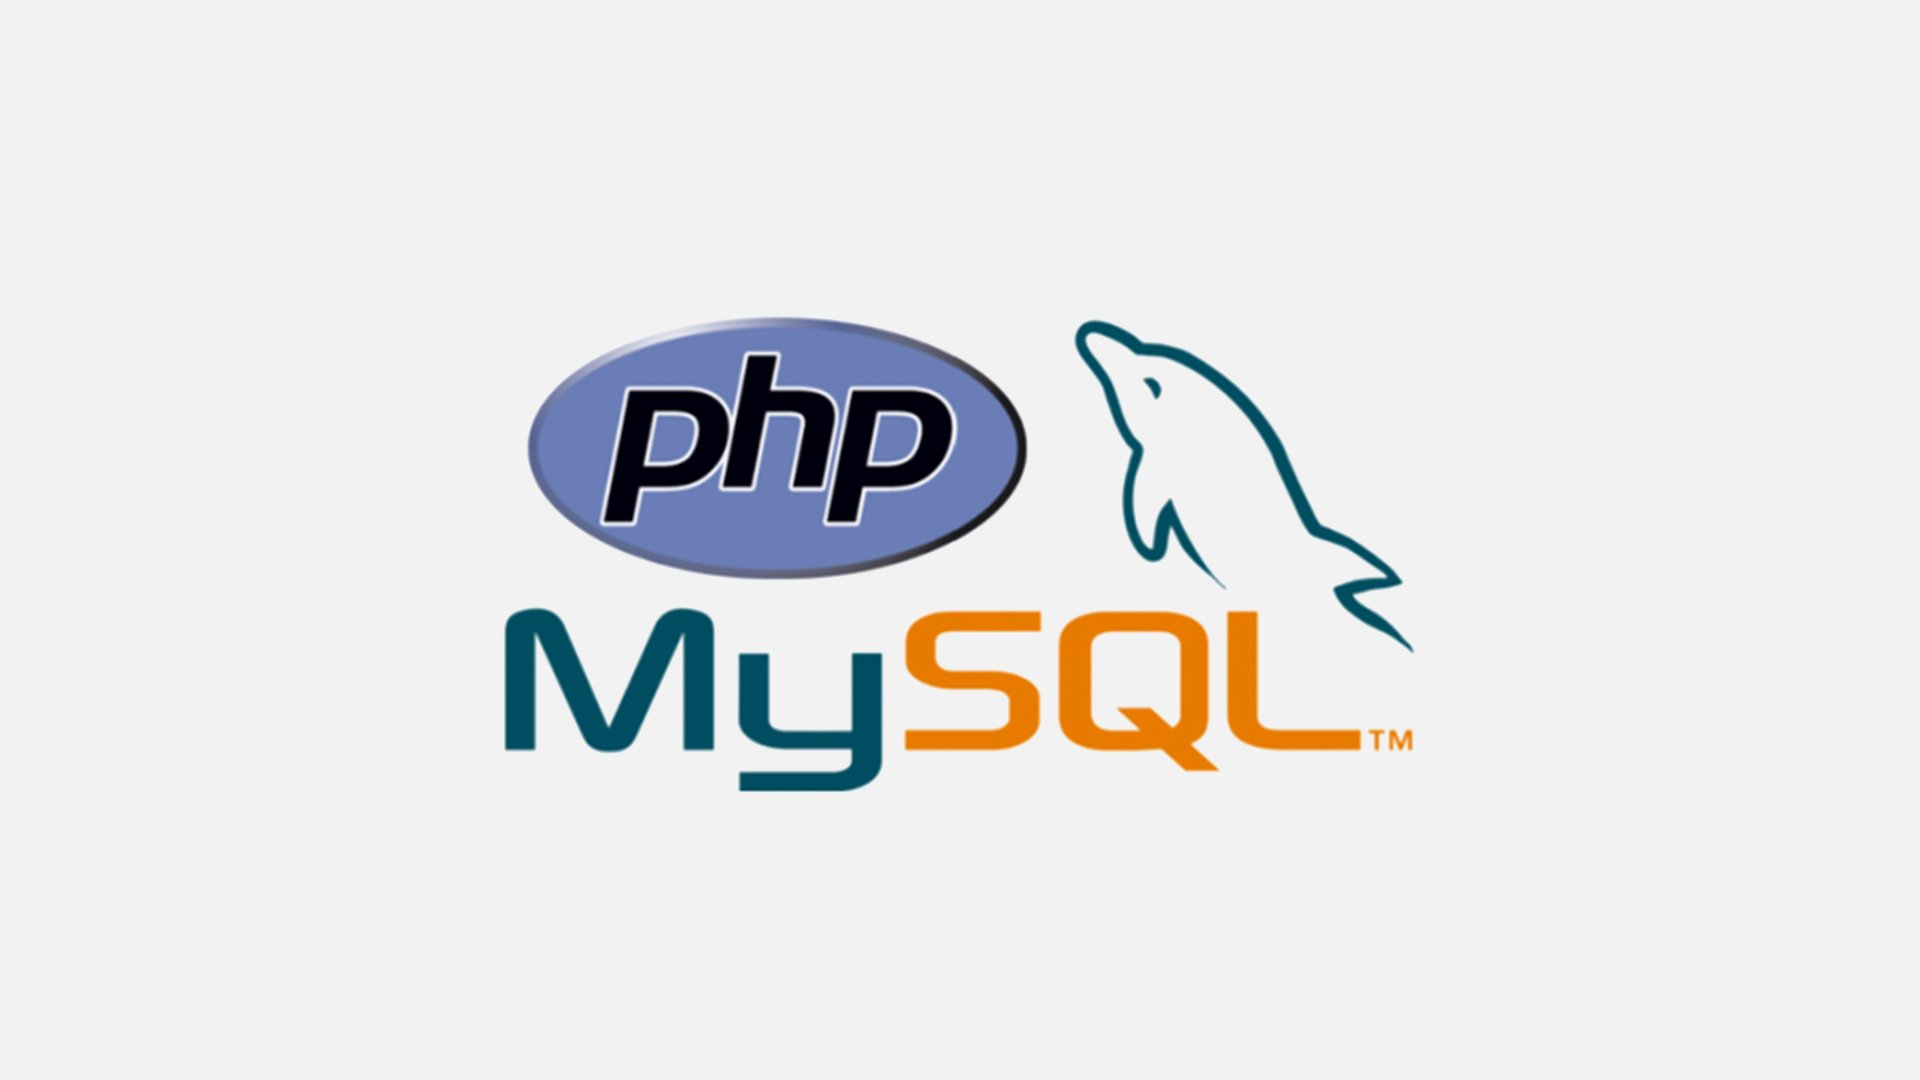 PHP & MySQL: The Combo That'll Never Fade Away